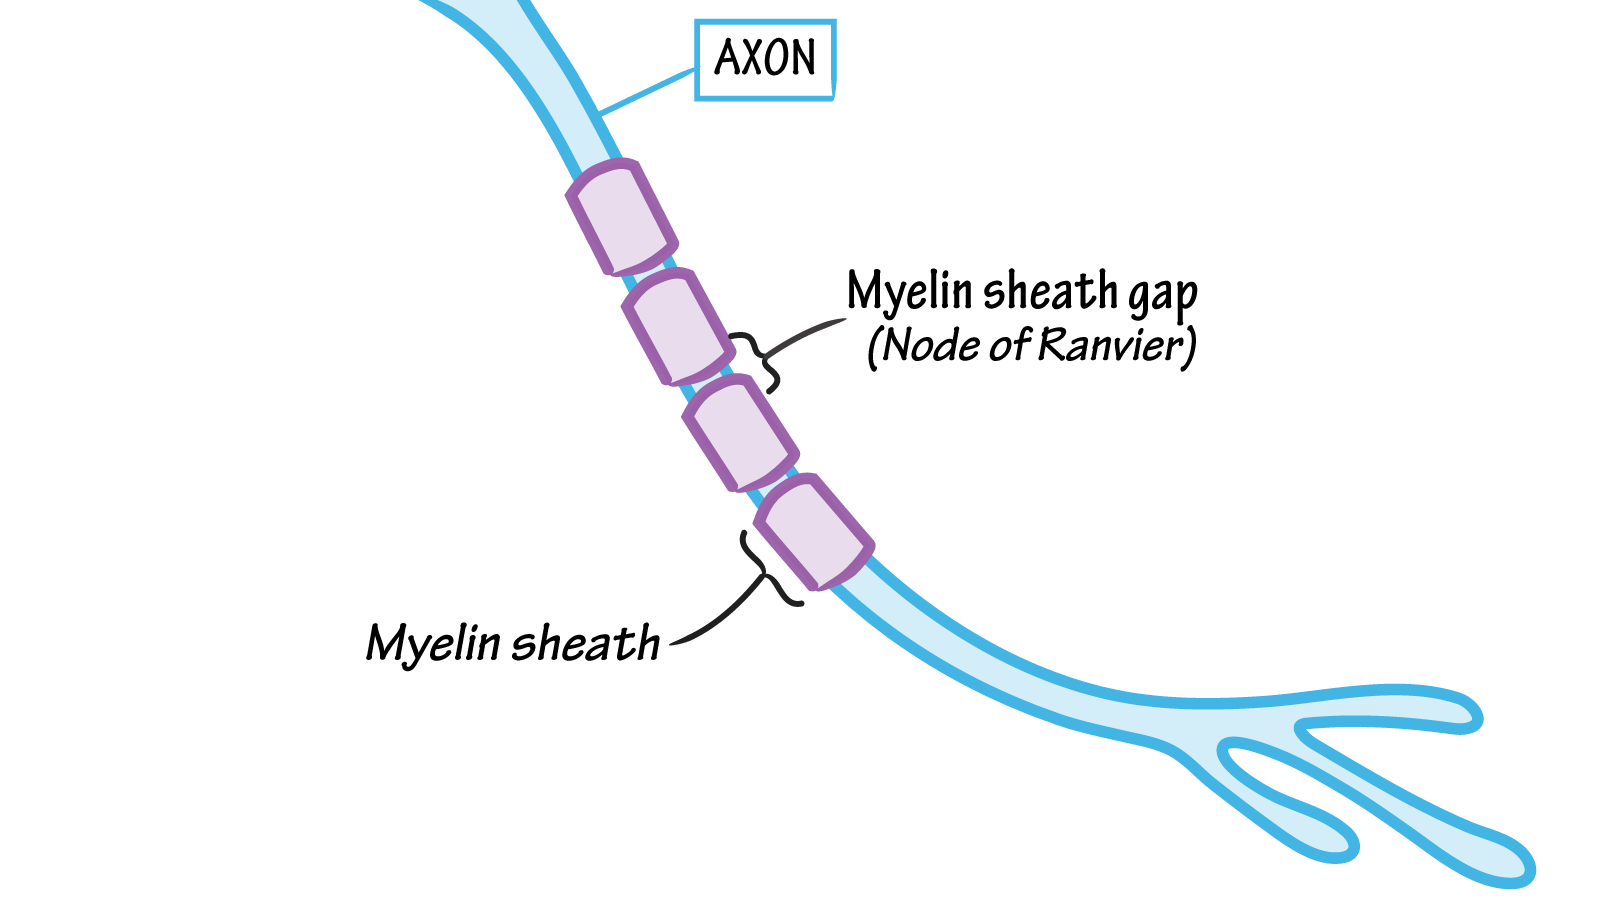 On a myelinated neuronal axon what do you call the spaces of bare between sections of myelin there are areas of bare axonal membrane that play a very important role in the conduction of action potentials ccuart Gallery